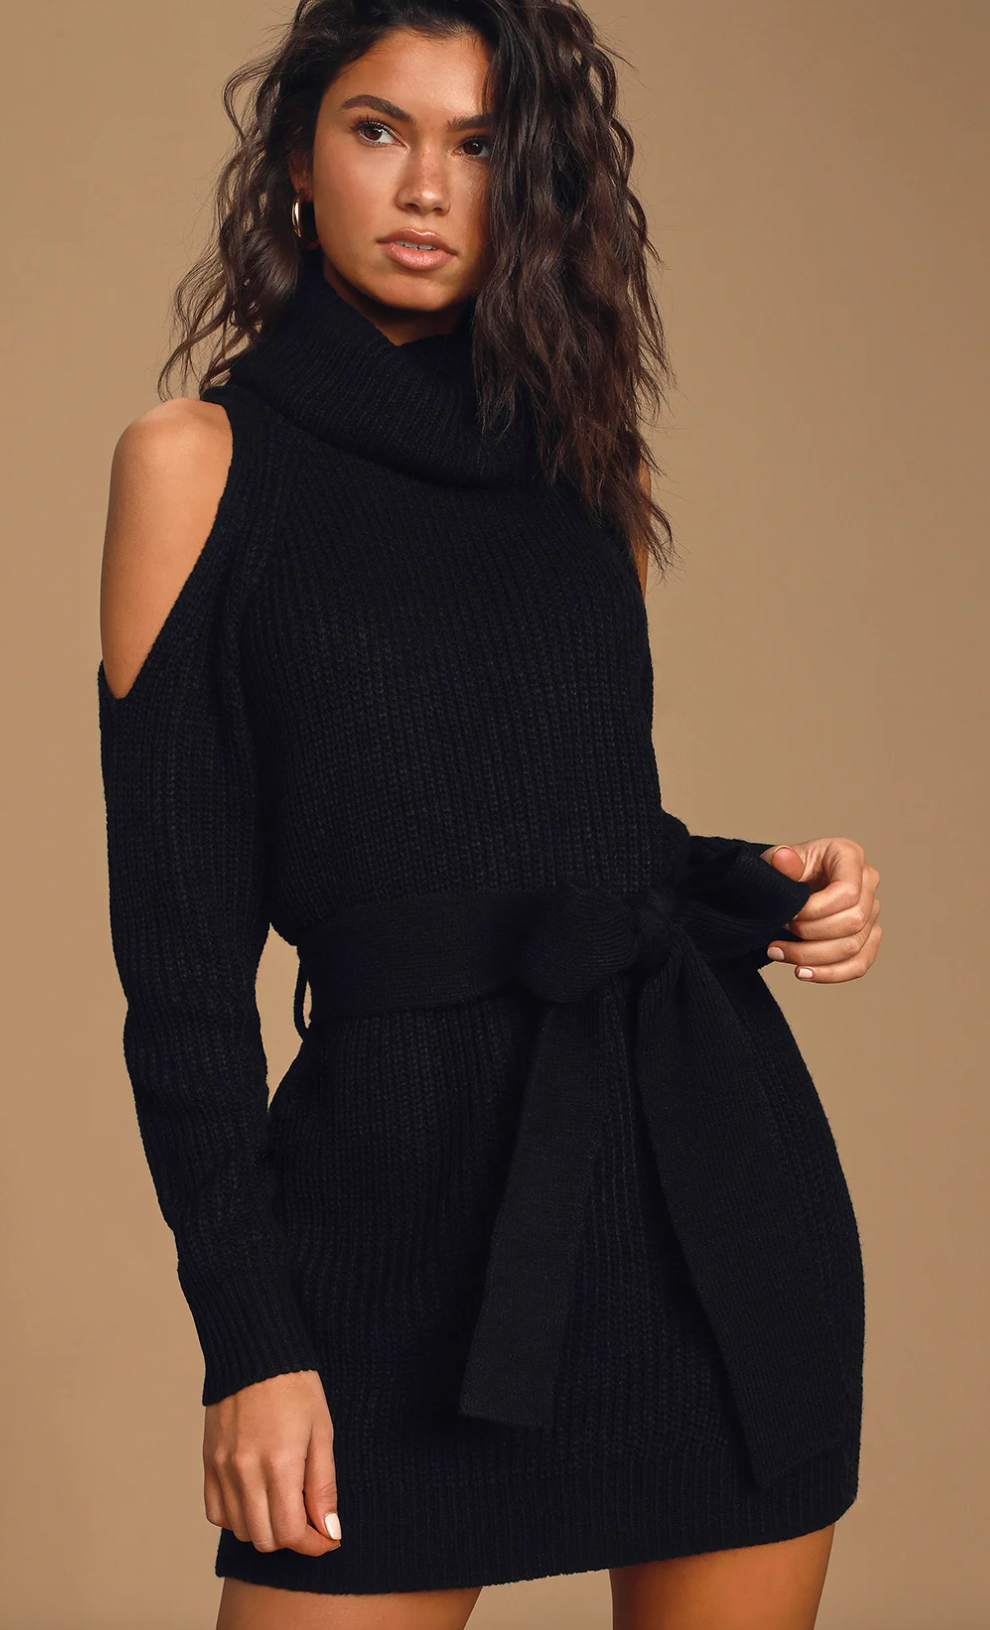 Black sweater dress from Lulus